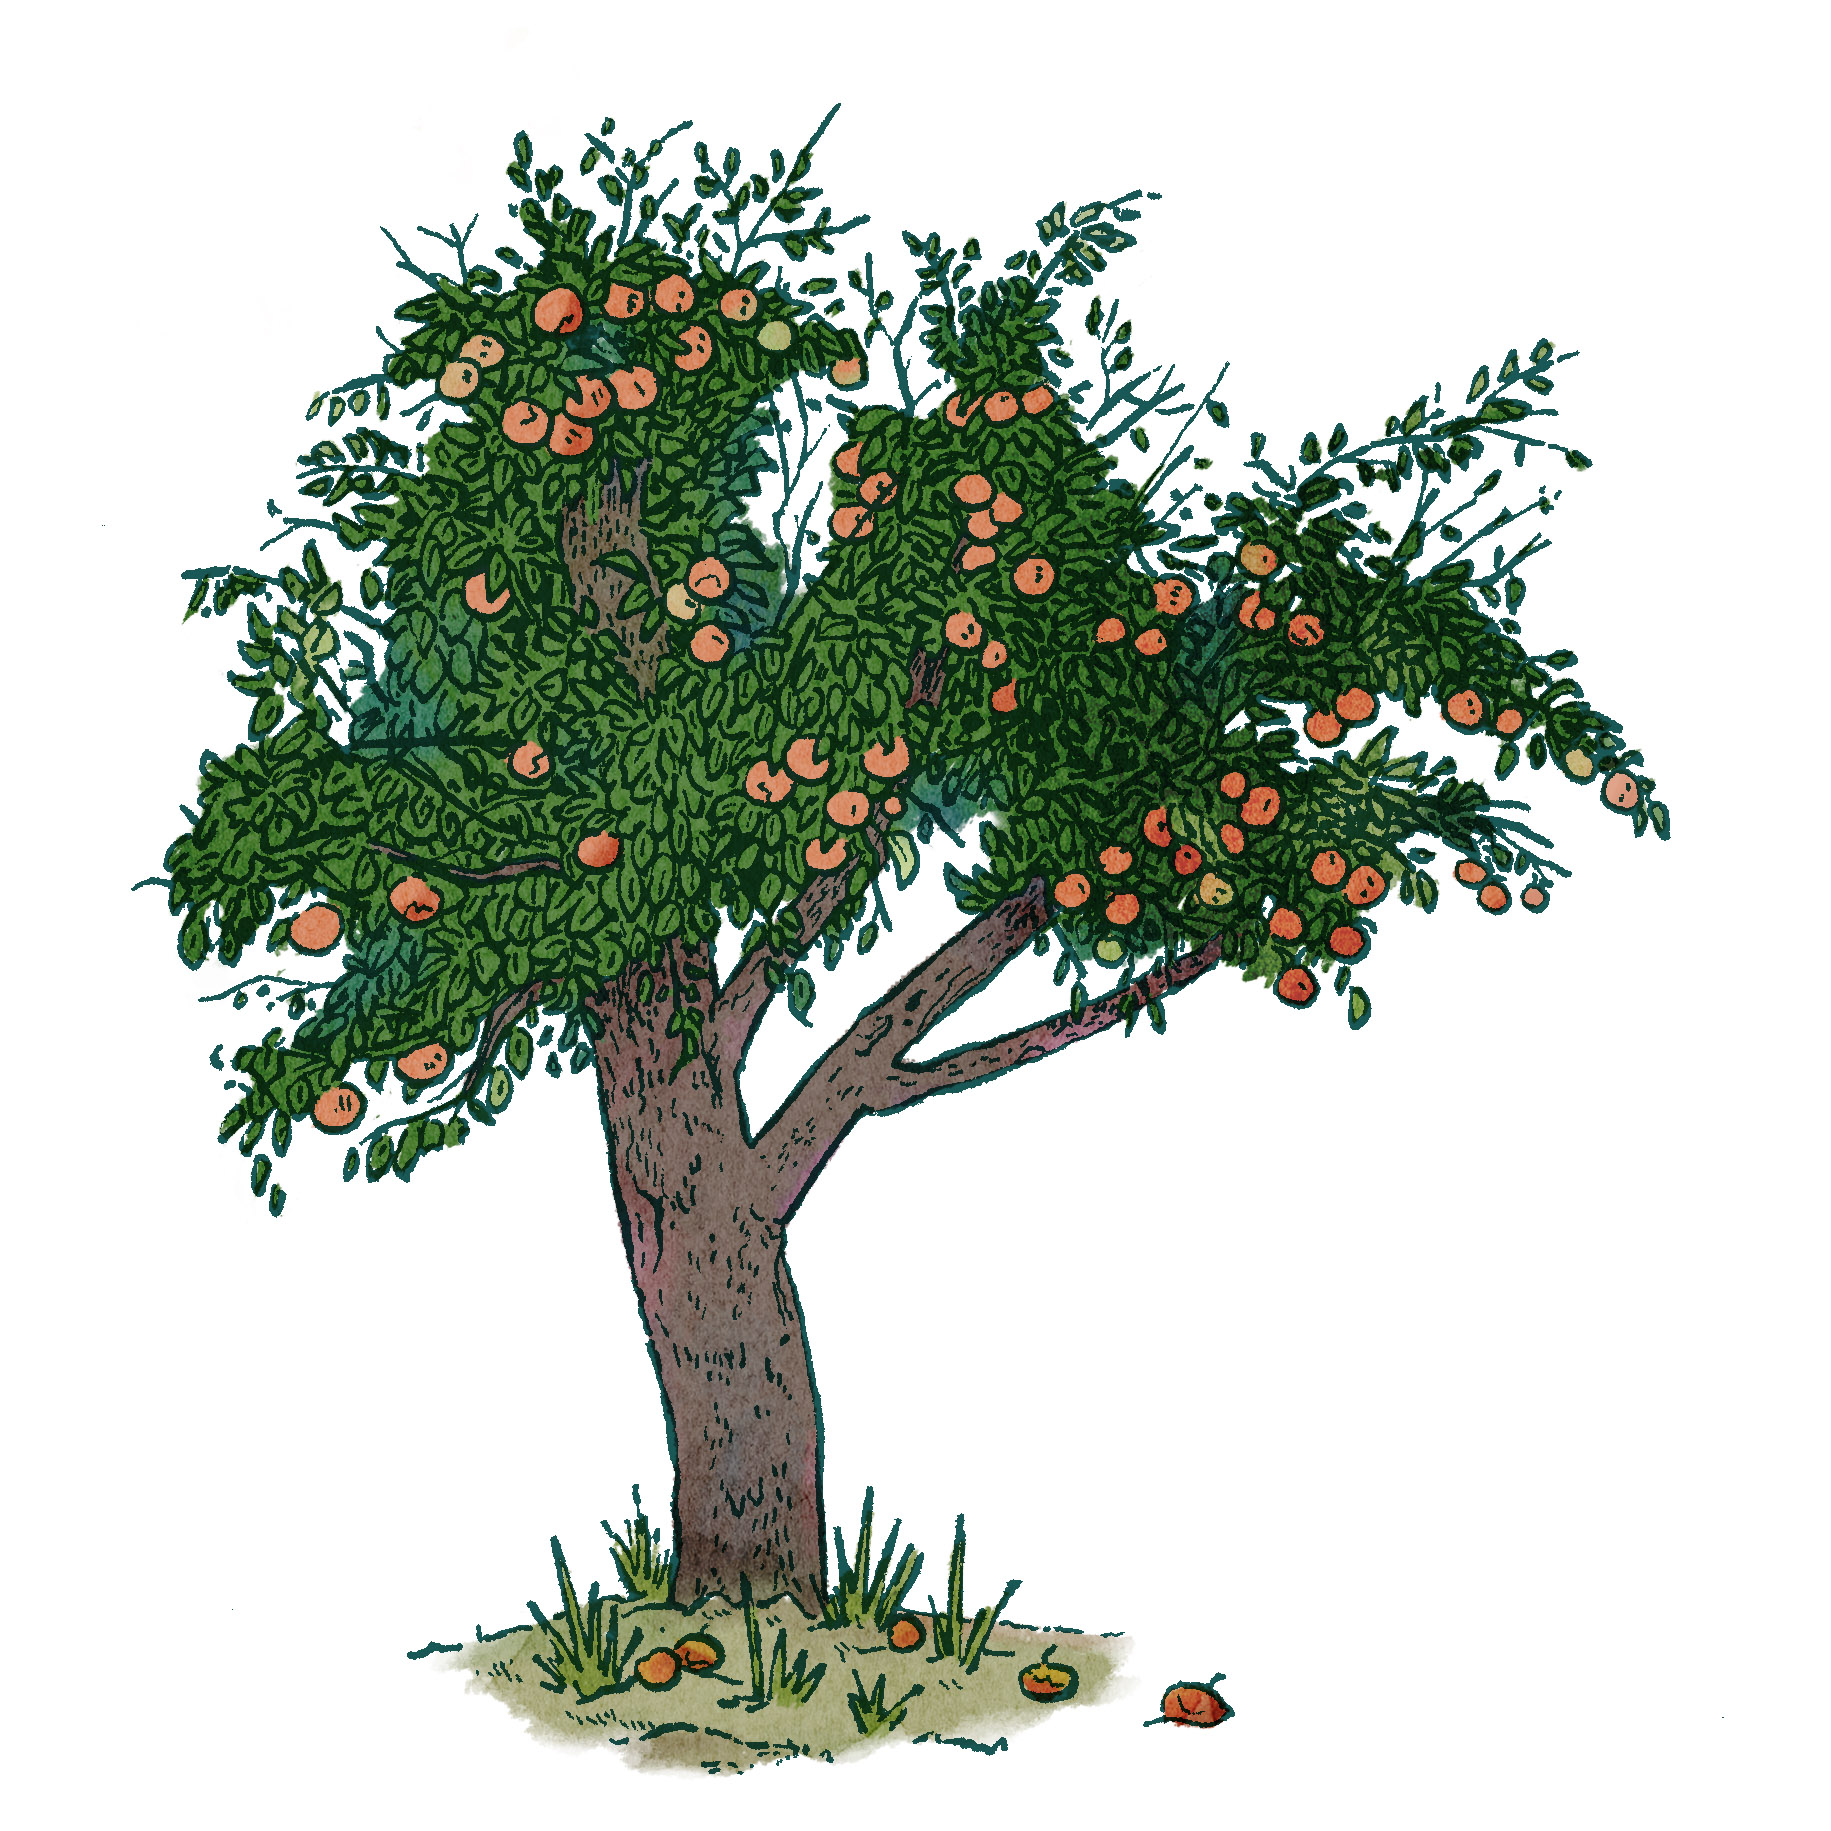 drawing study of an apple tree